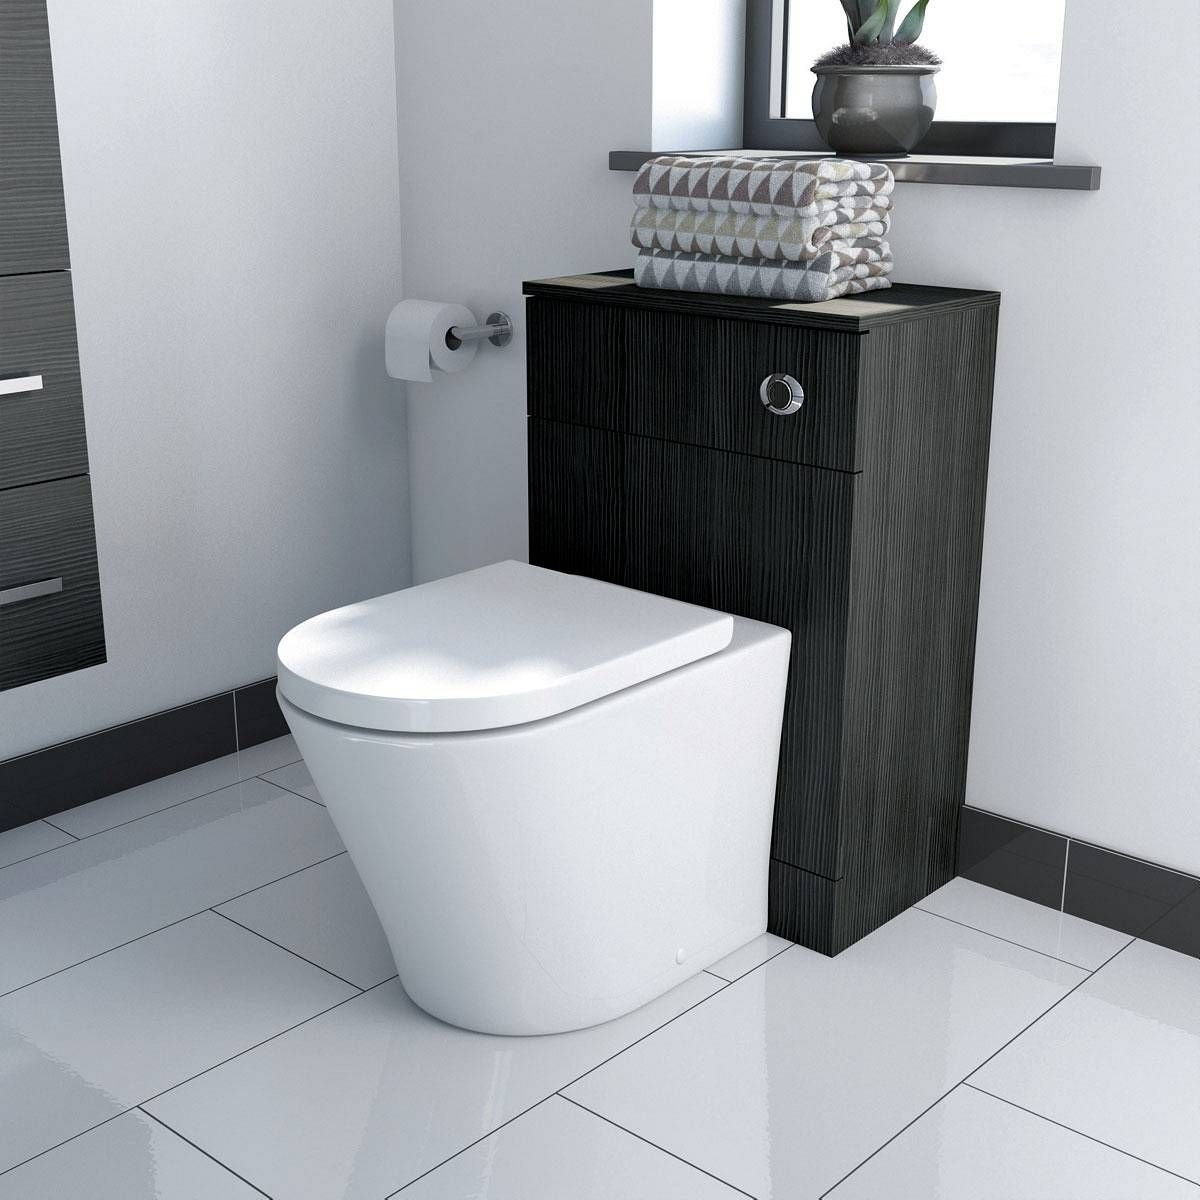 Bathroom Accessories Victoria Plumb drift grey back to wall unit - https://victoriaplum/product